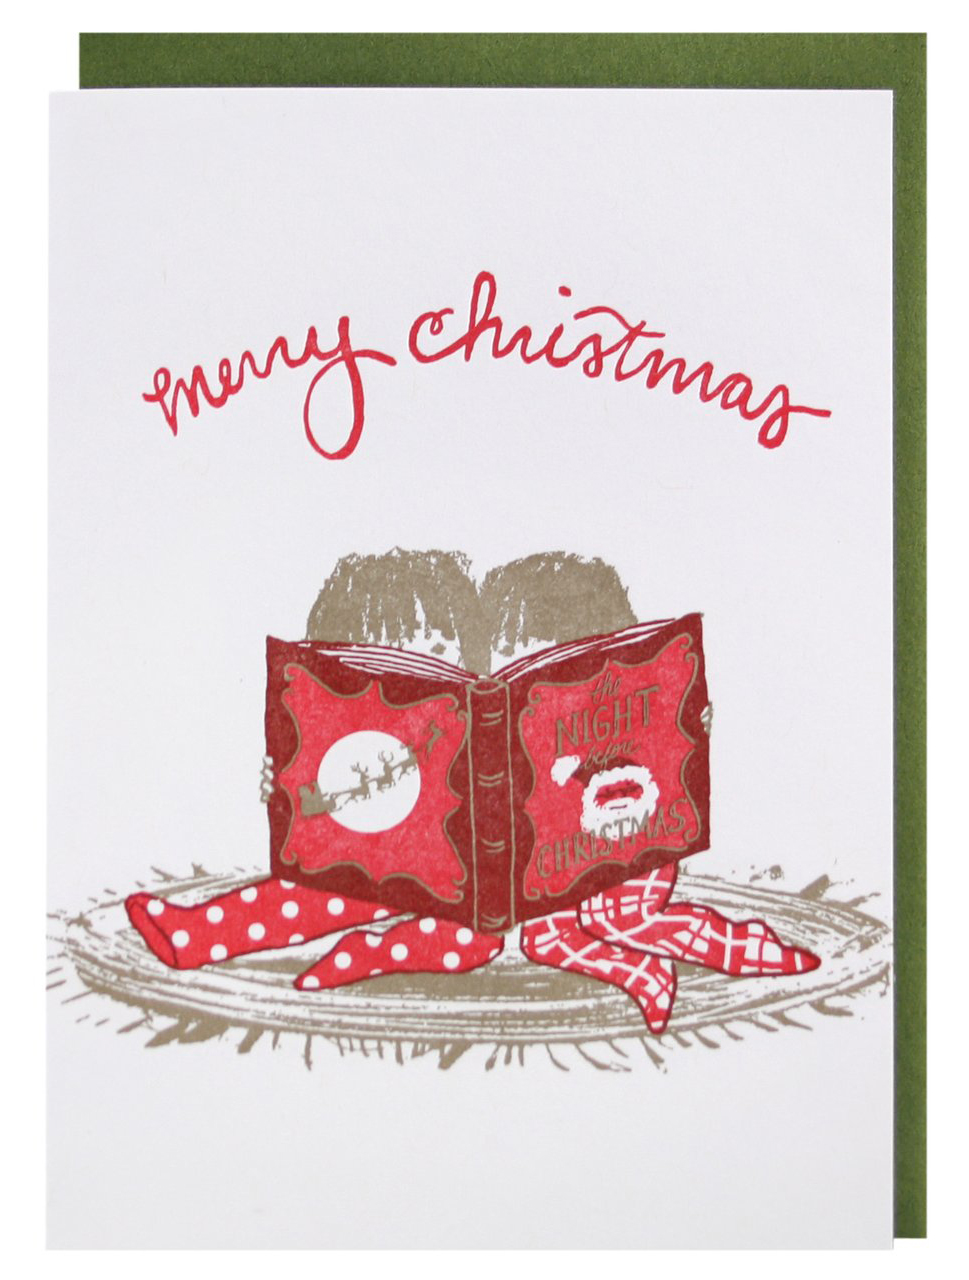 Reading-Together-Christmas-Card_1280x1280.jpg